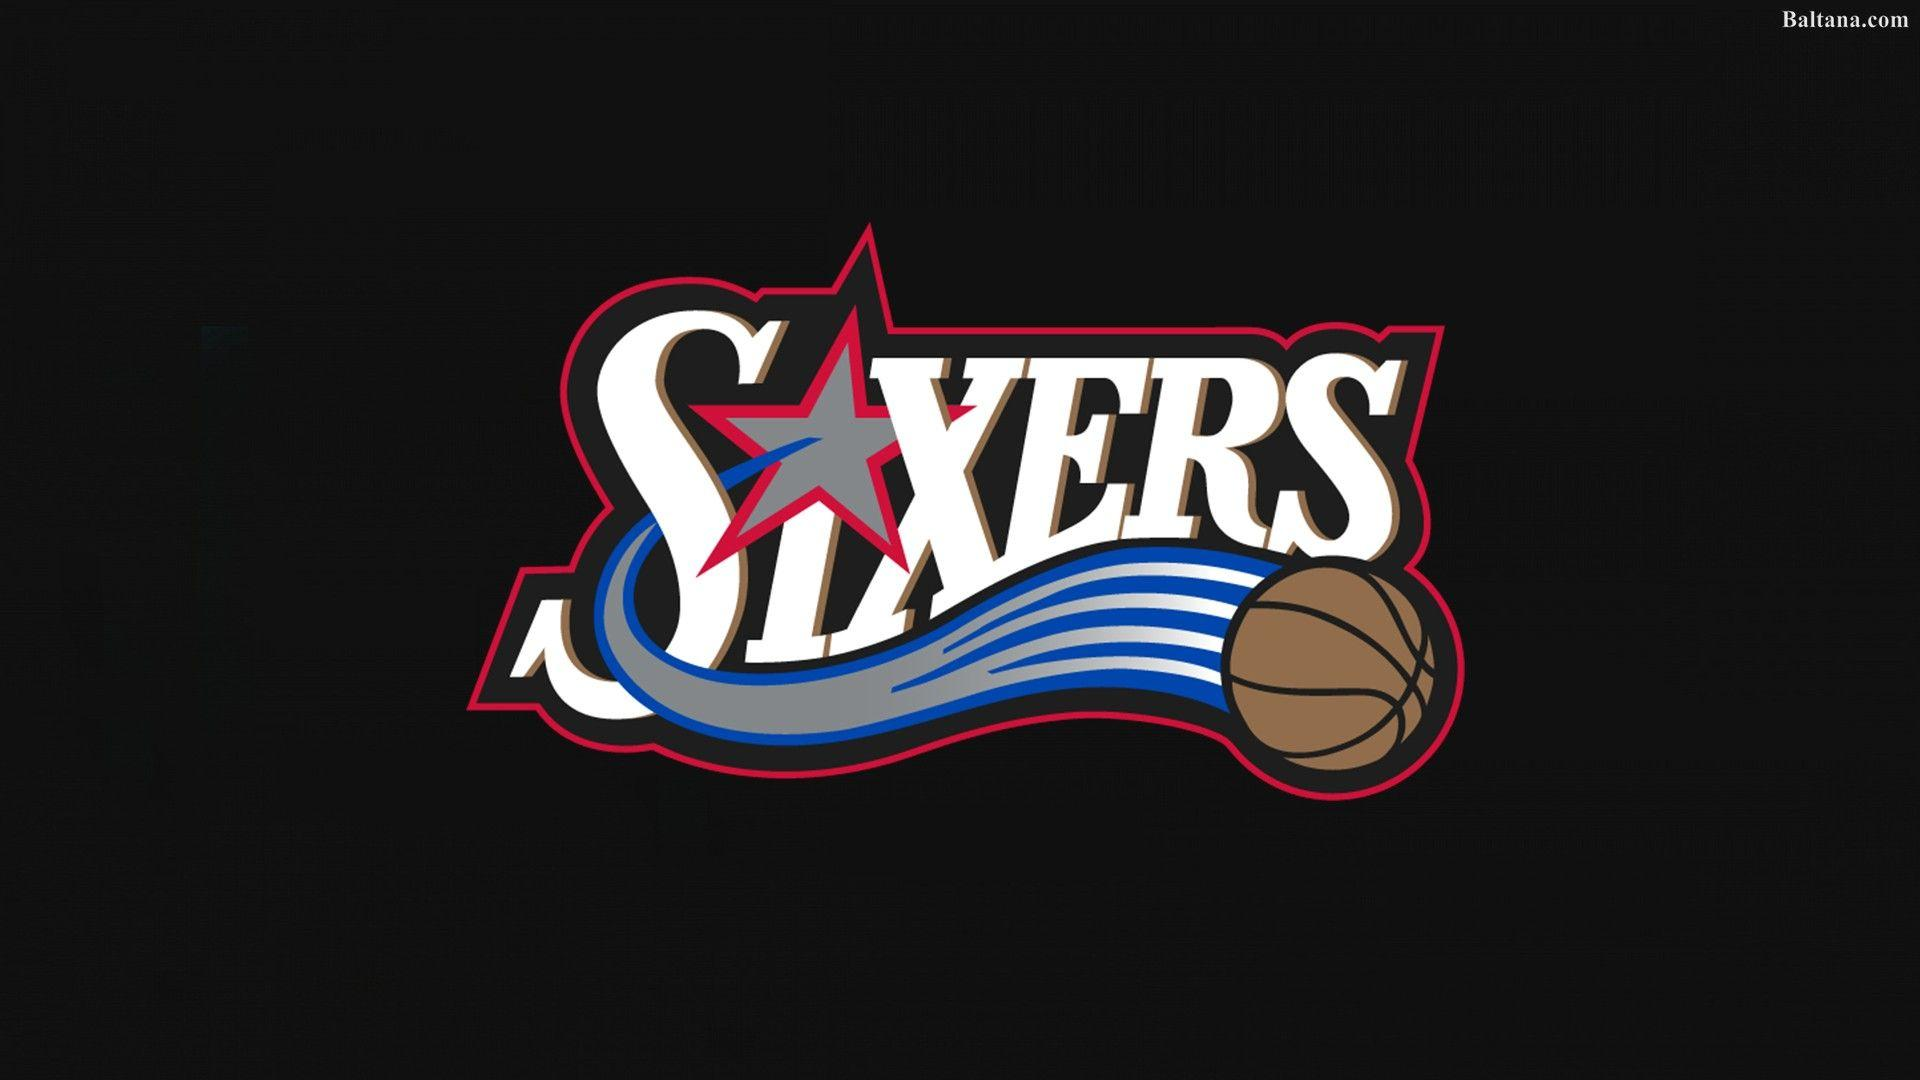 Philadelphia 76ers Wallpapers HD Backgrounds, Image, Pics, Photos